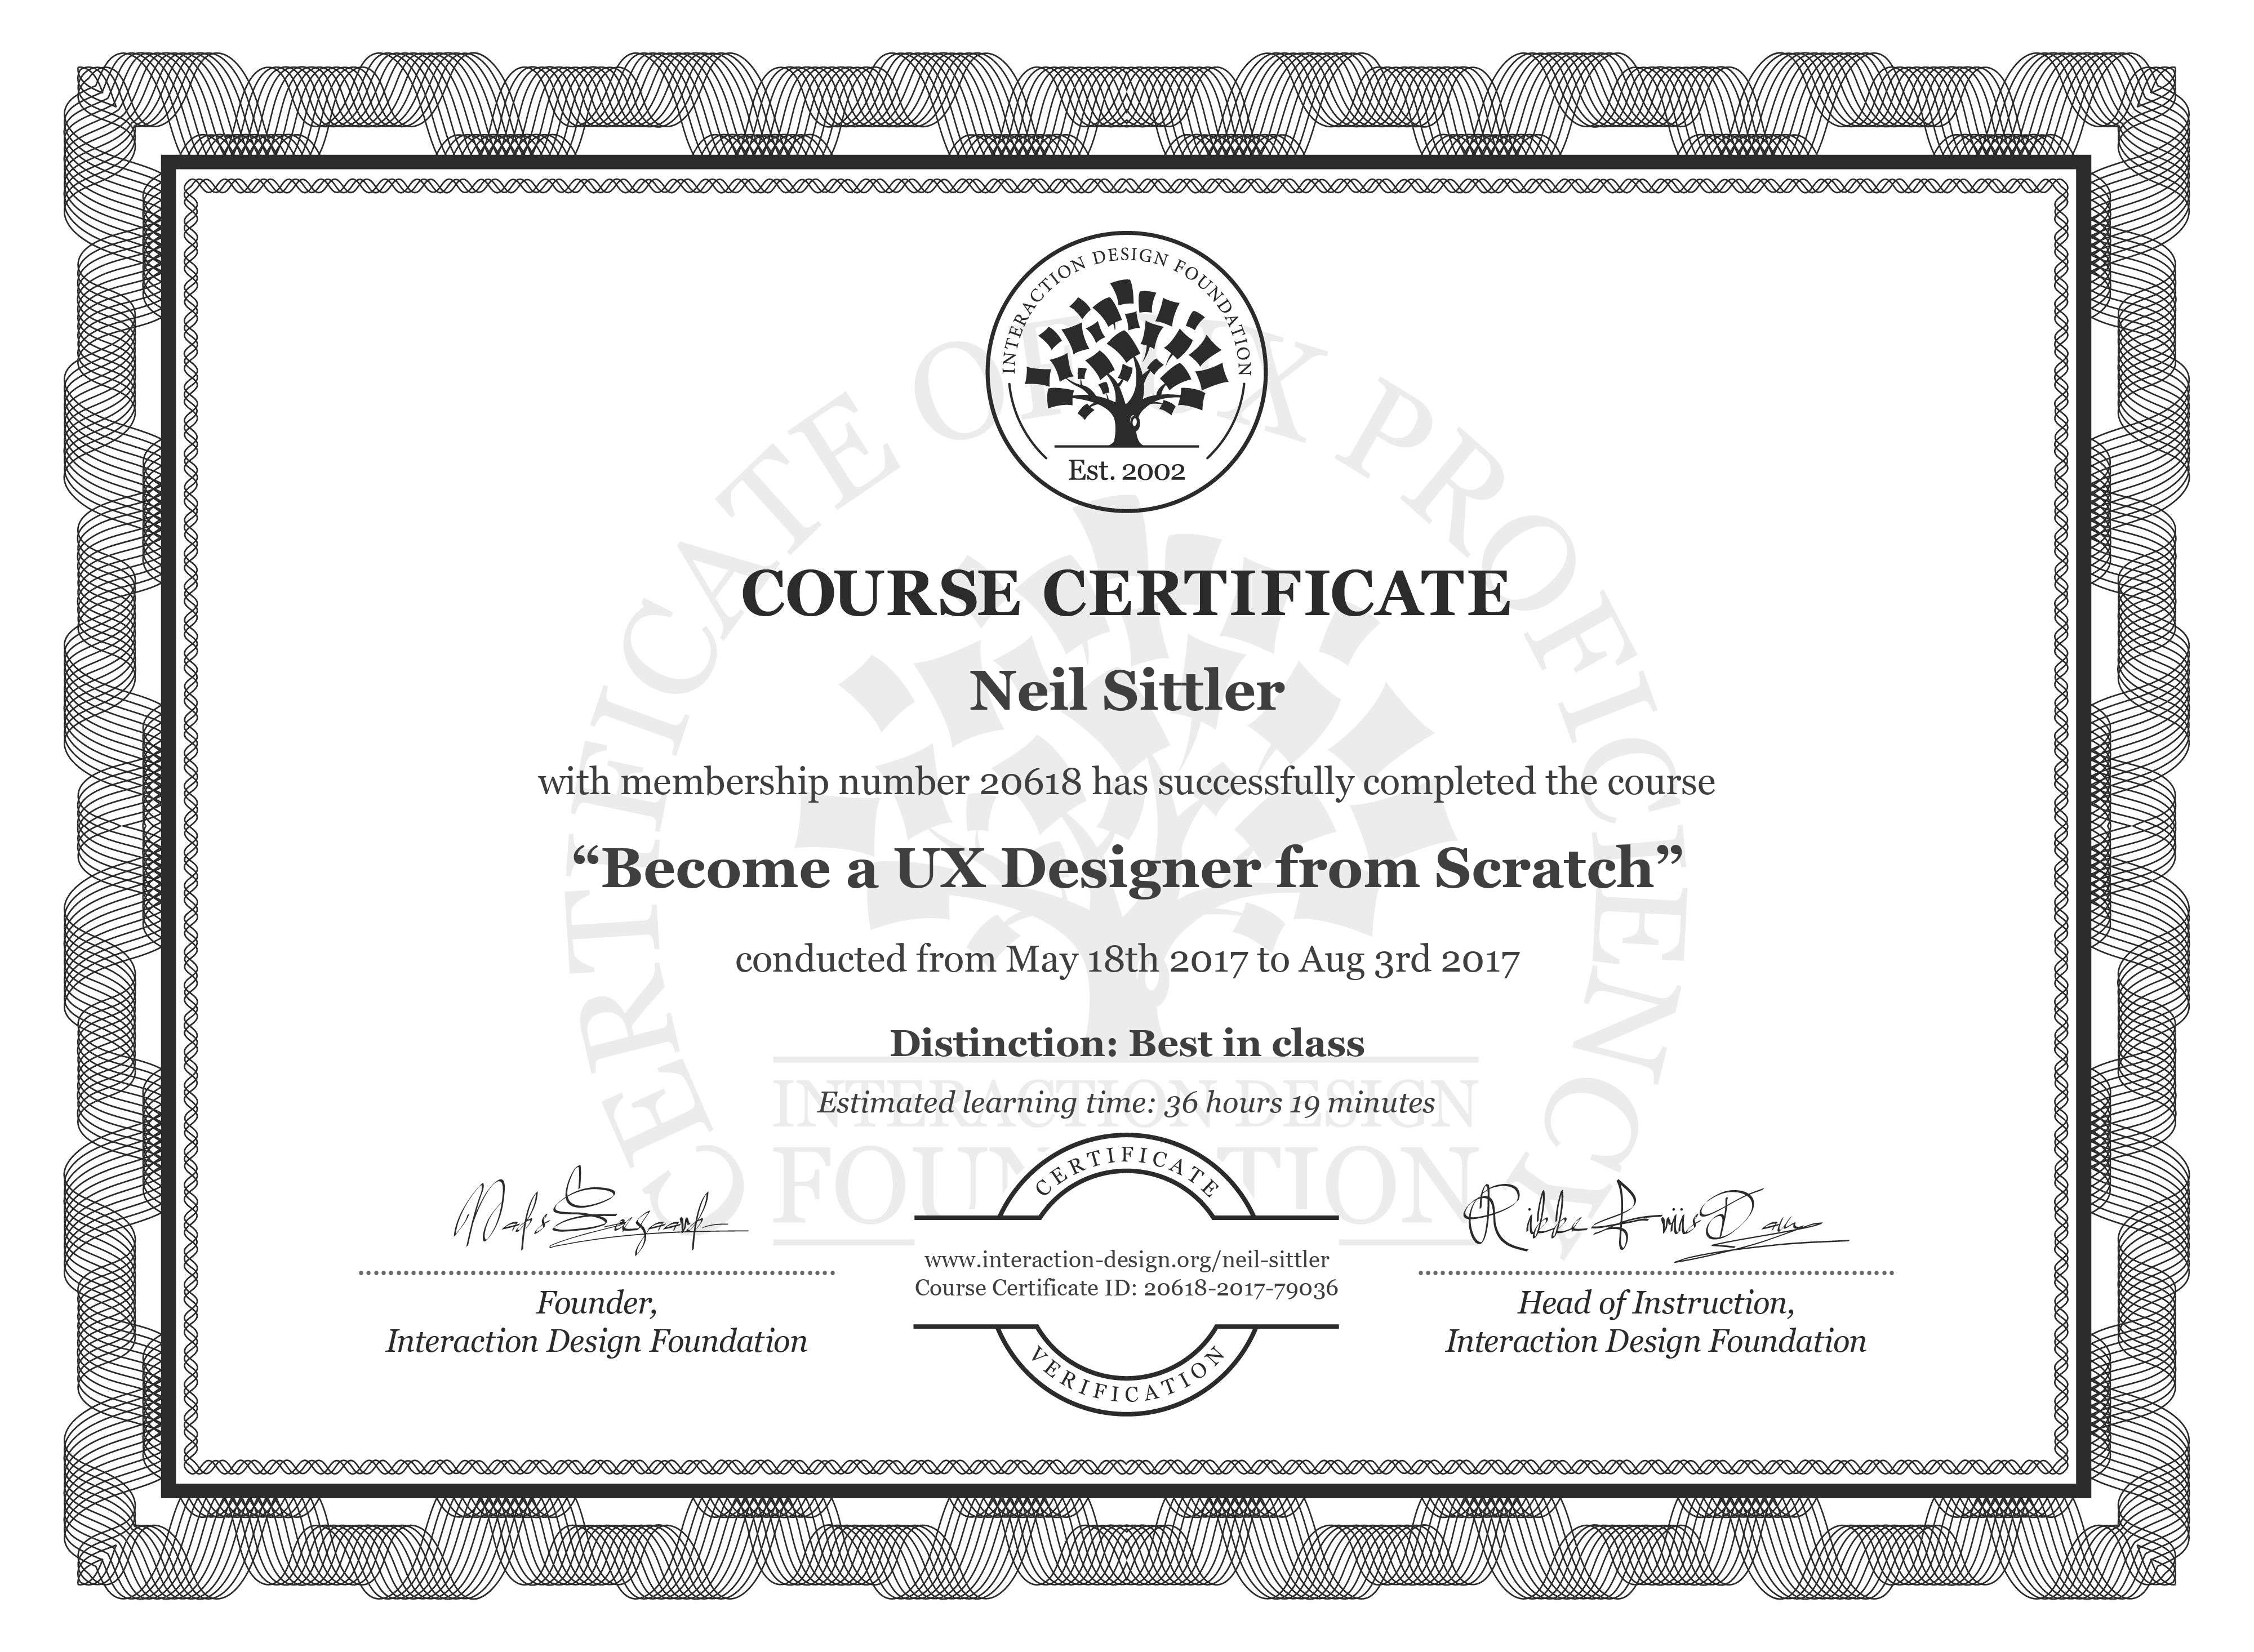 Neil Sittler: Course Certificate - Become a UX Designer from Scratch